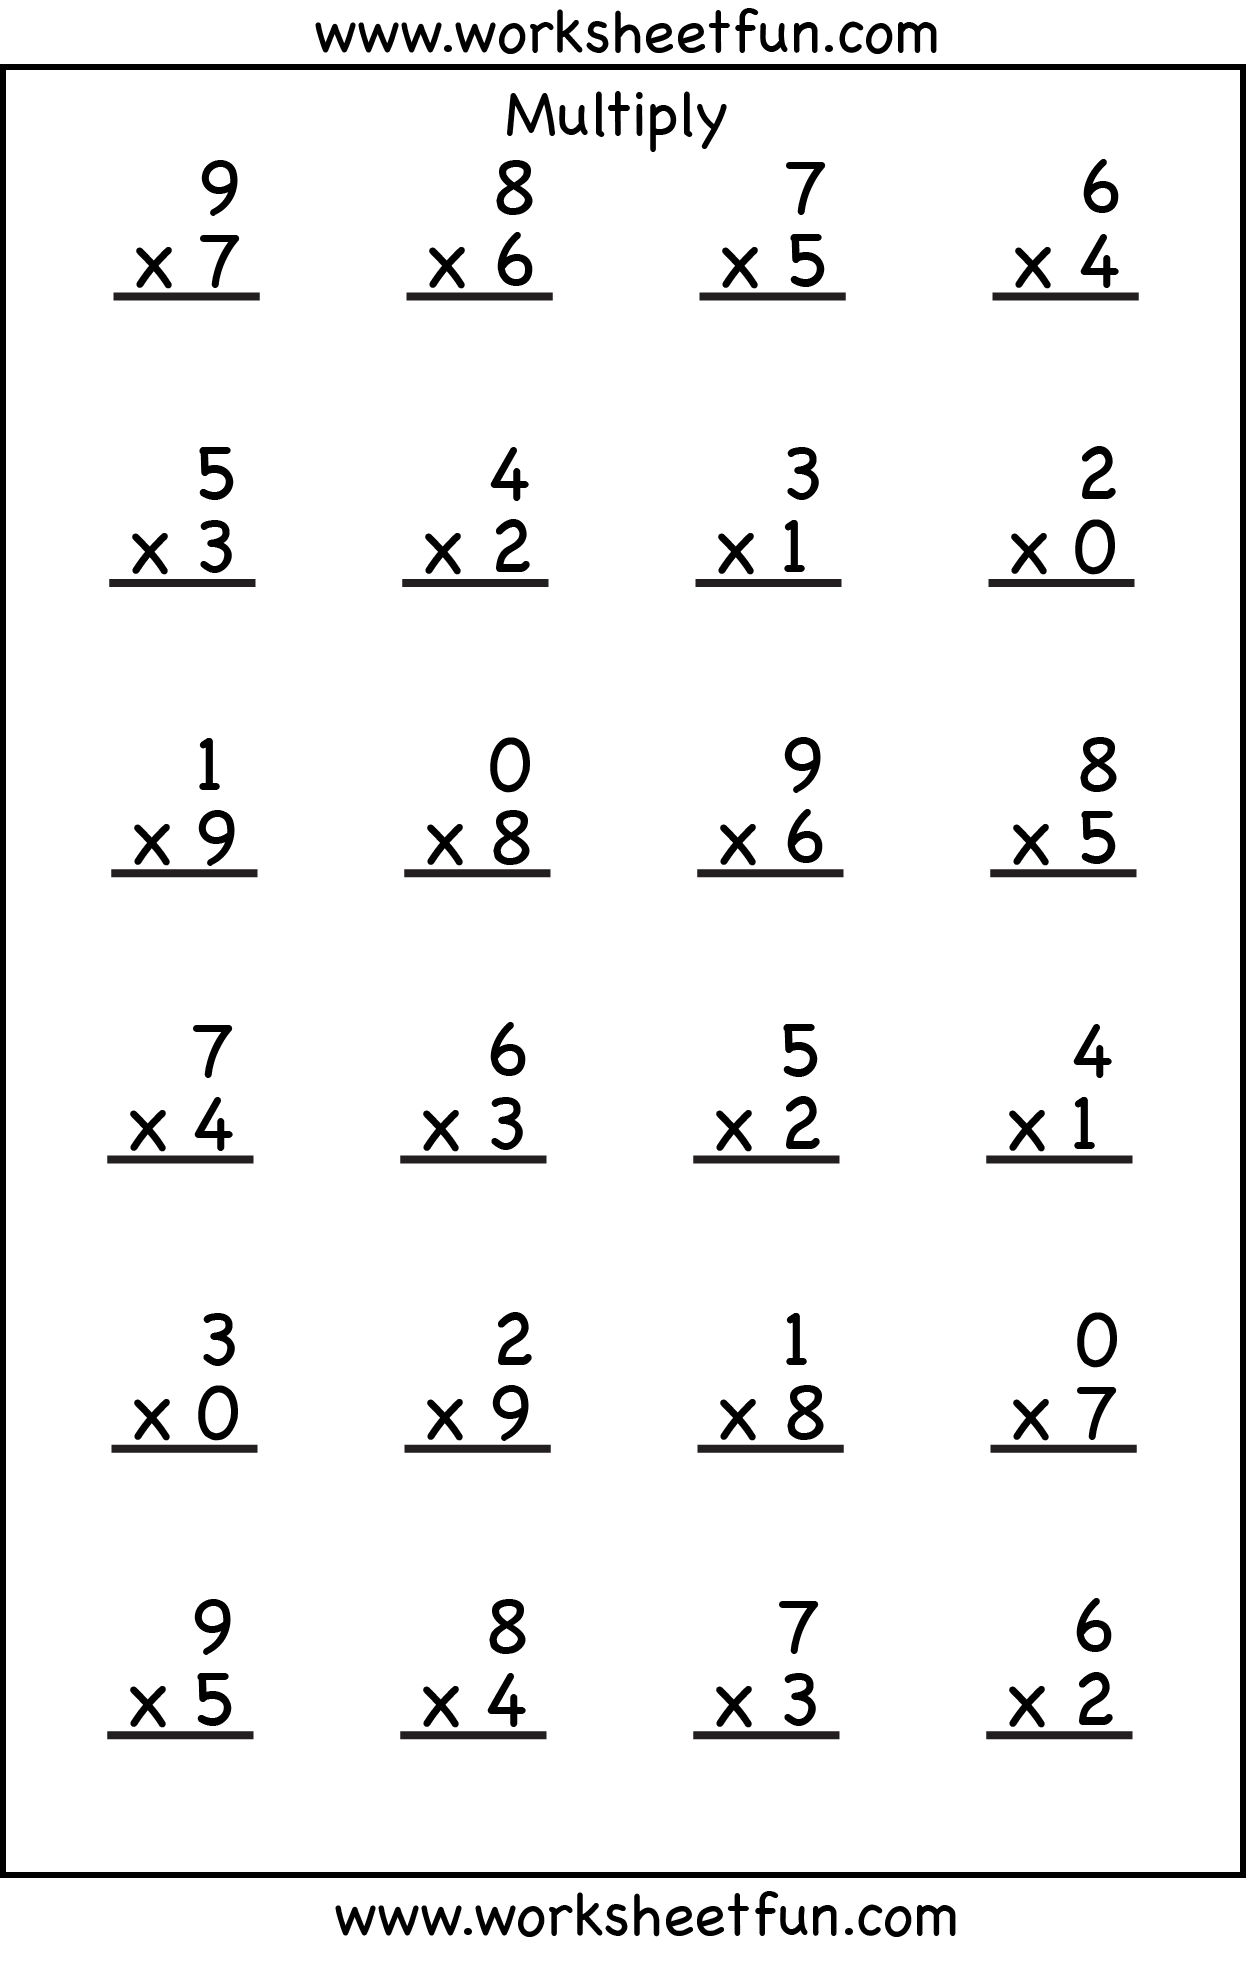 math worksheet : 7 best images of printable multiply by 4 worksheet  printable  : Multiplication Worksheets For Grade 1